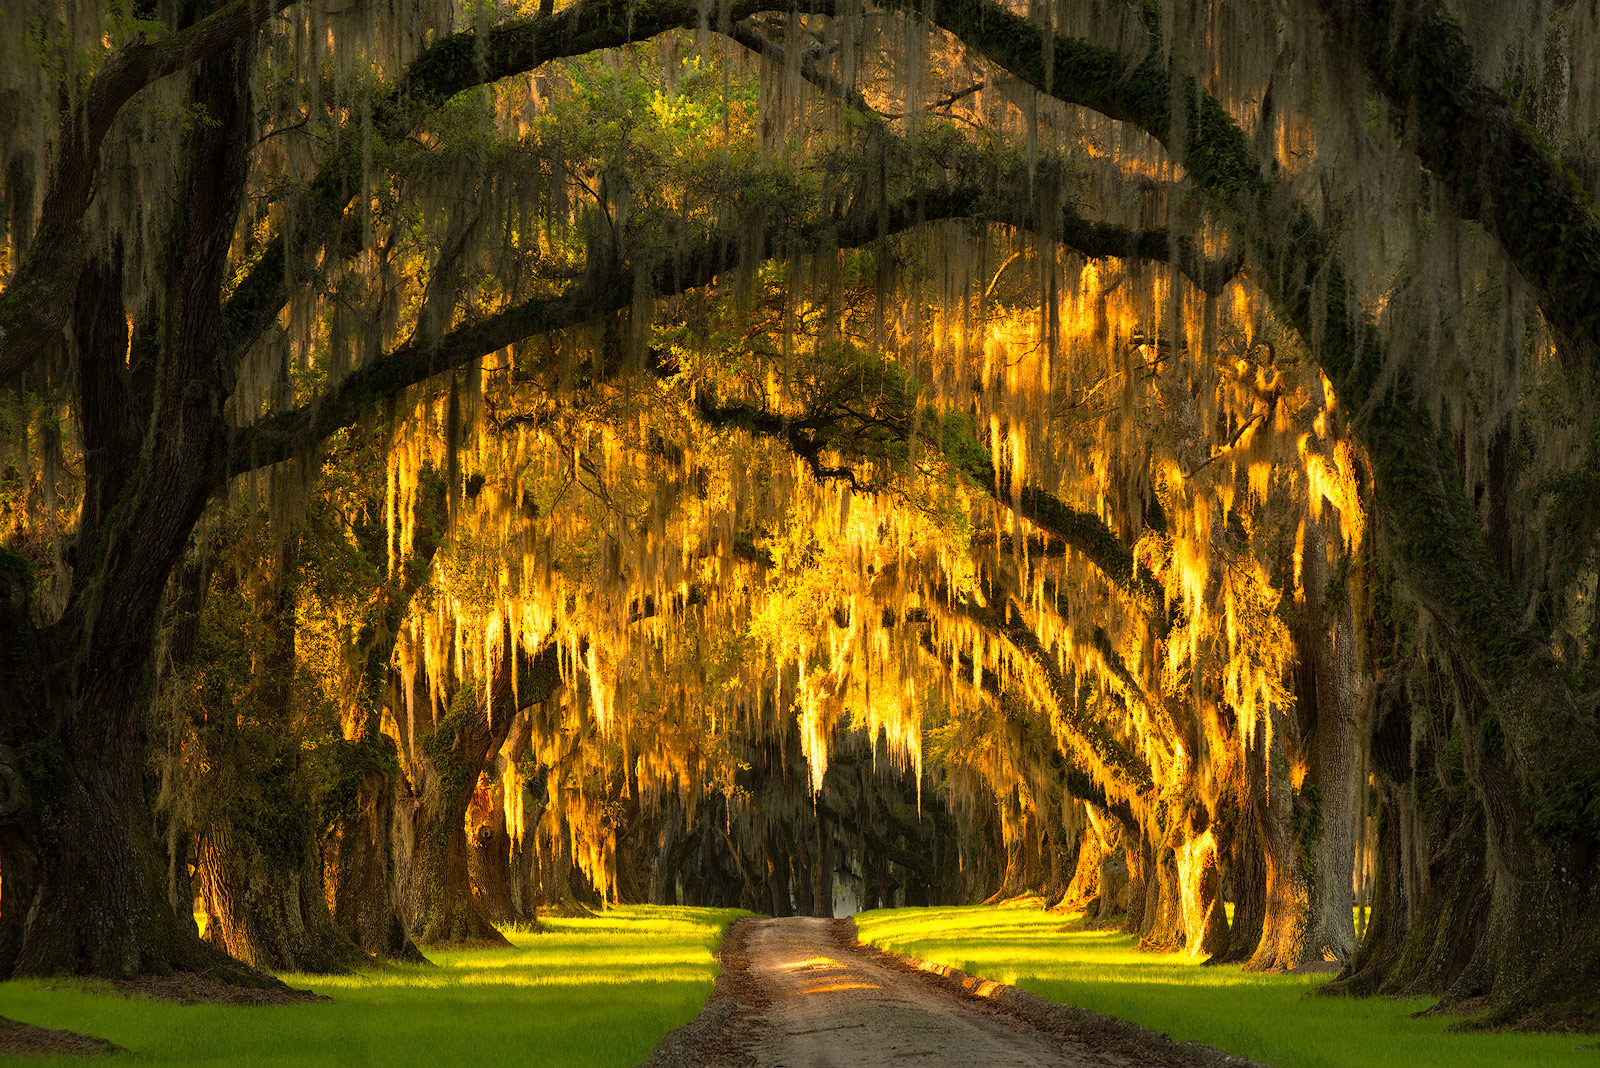 South Carolina, Avenue of Oaks, Oak, Trees, Line trees, Sunrise, road, plantation, southern living, Charleston, low country, moss, photo